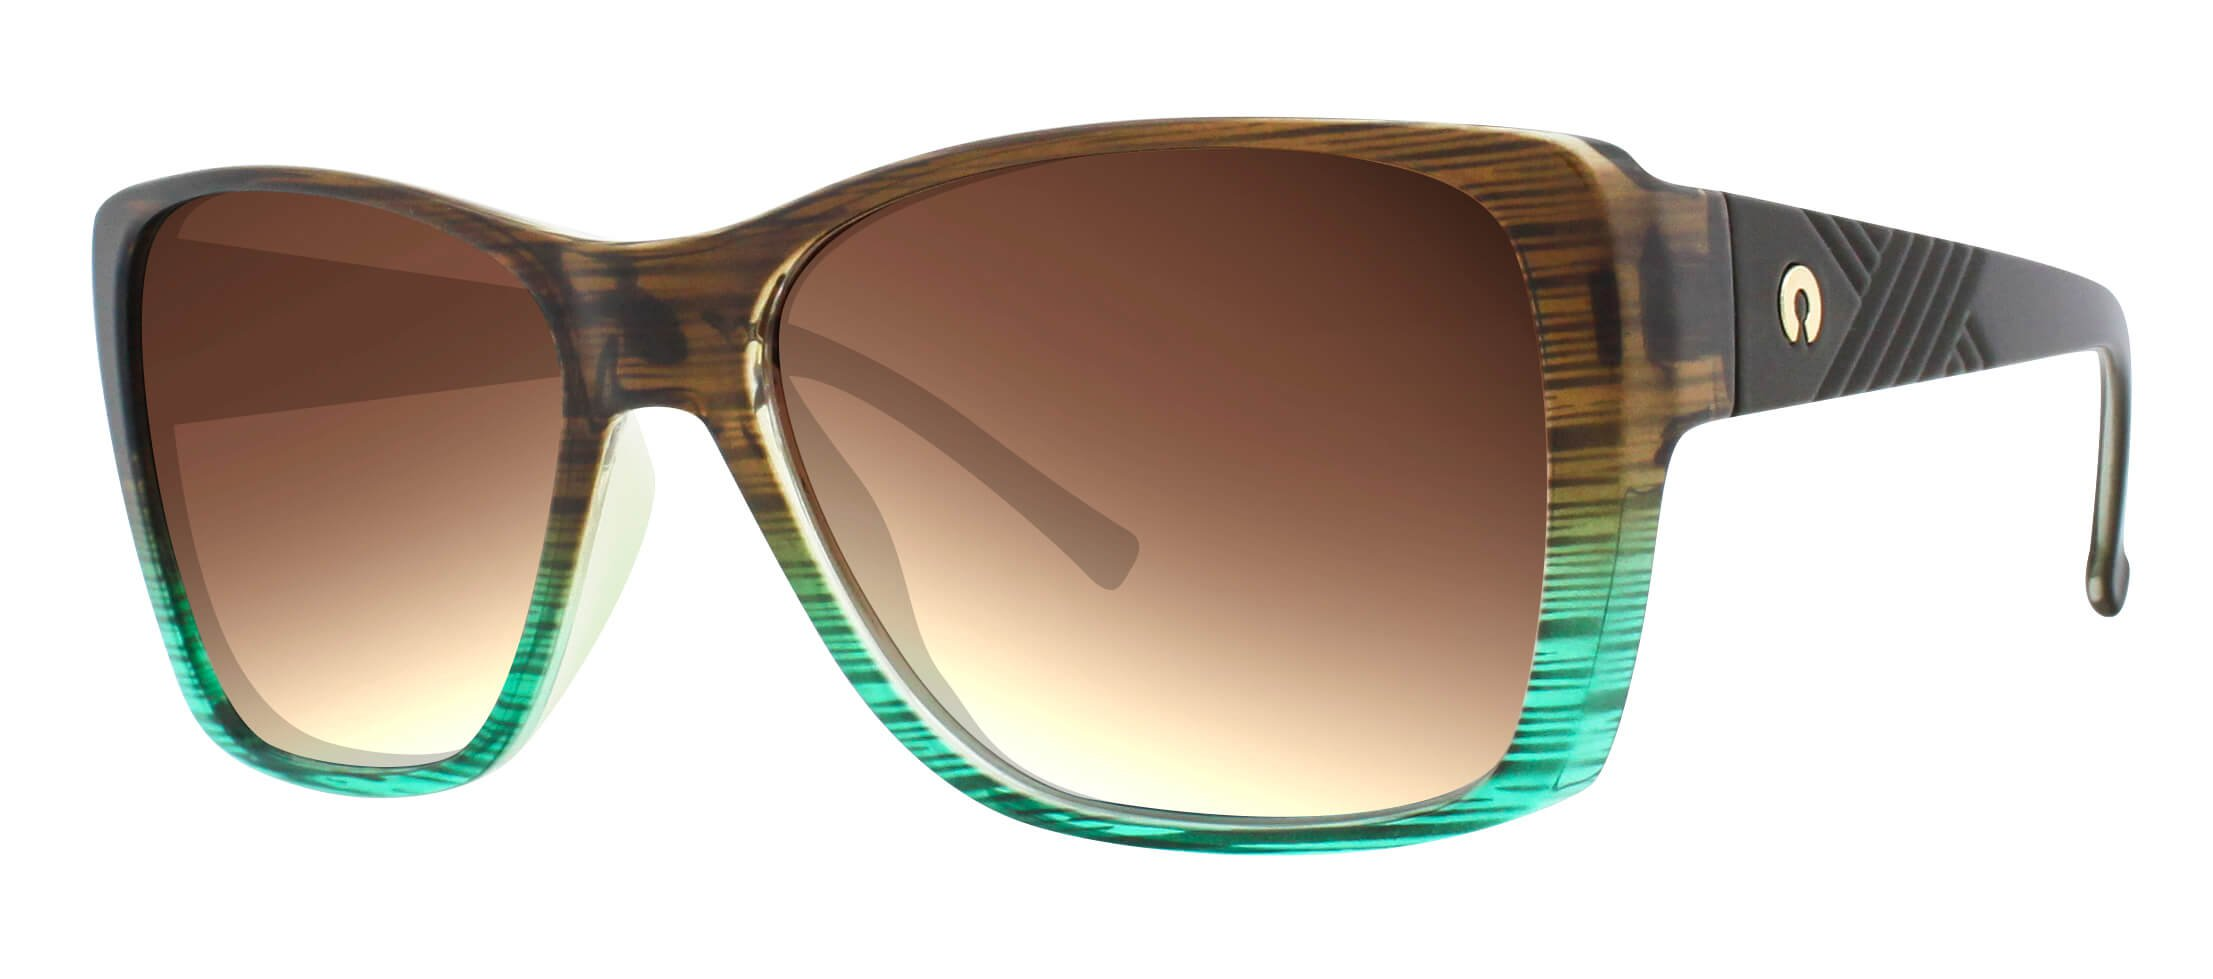 ÓC SECRET SIENNA GRA. STRIPED BROW/GREEN / POLARIZED GRADIENT BROWN